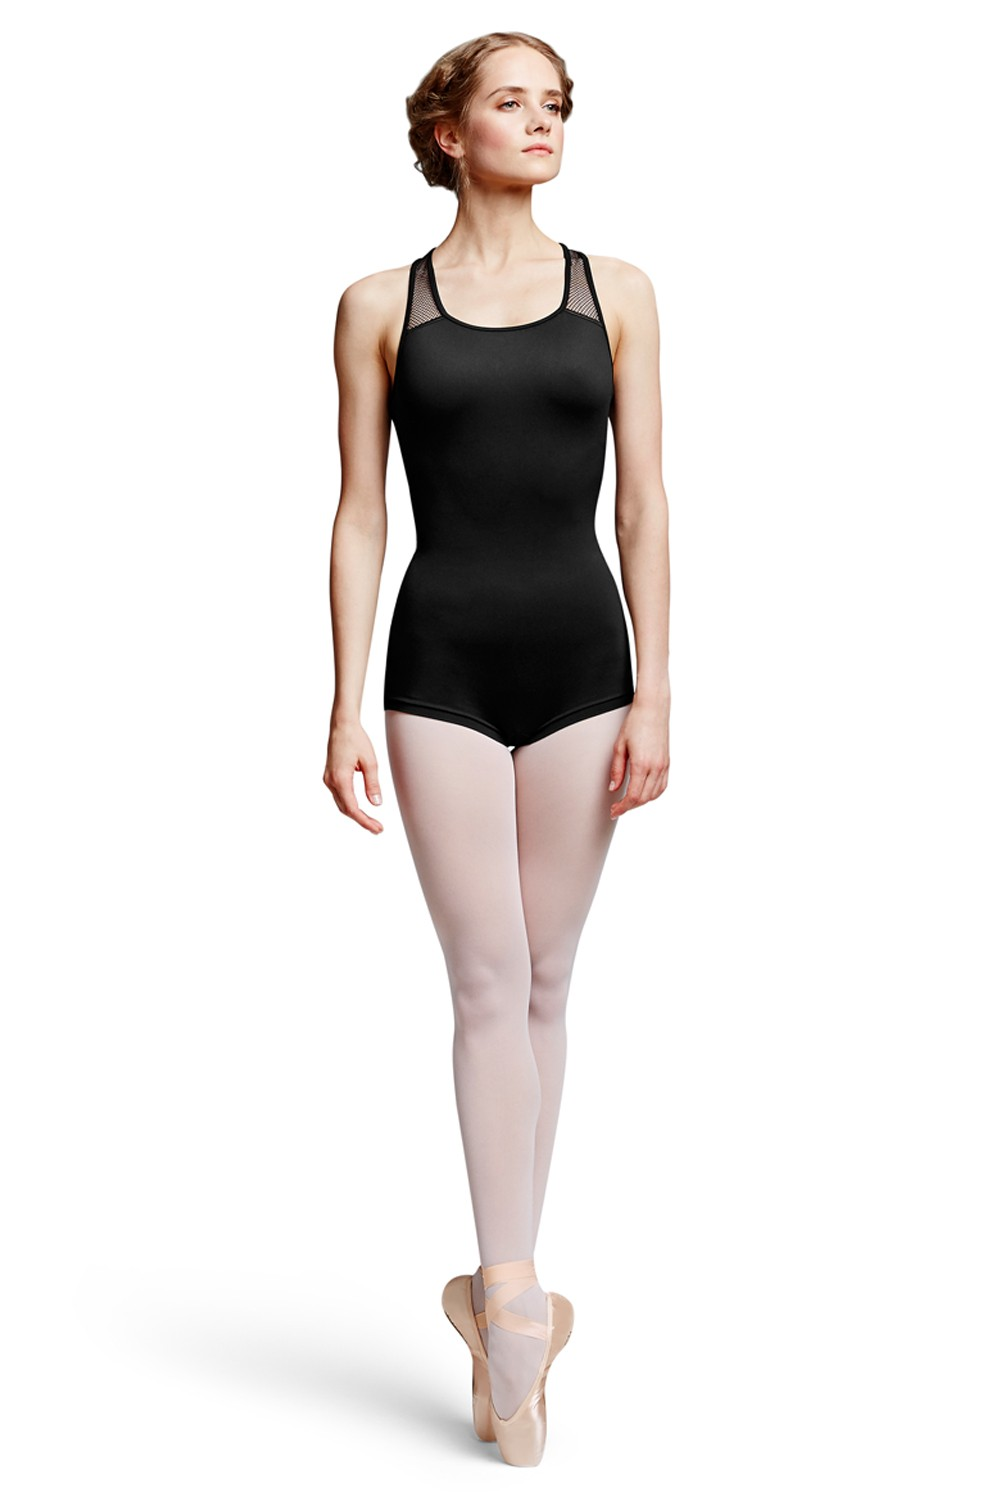 Jet Women's Dance Leotards